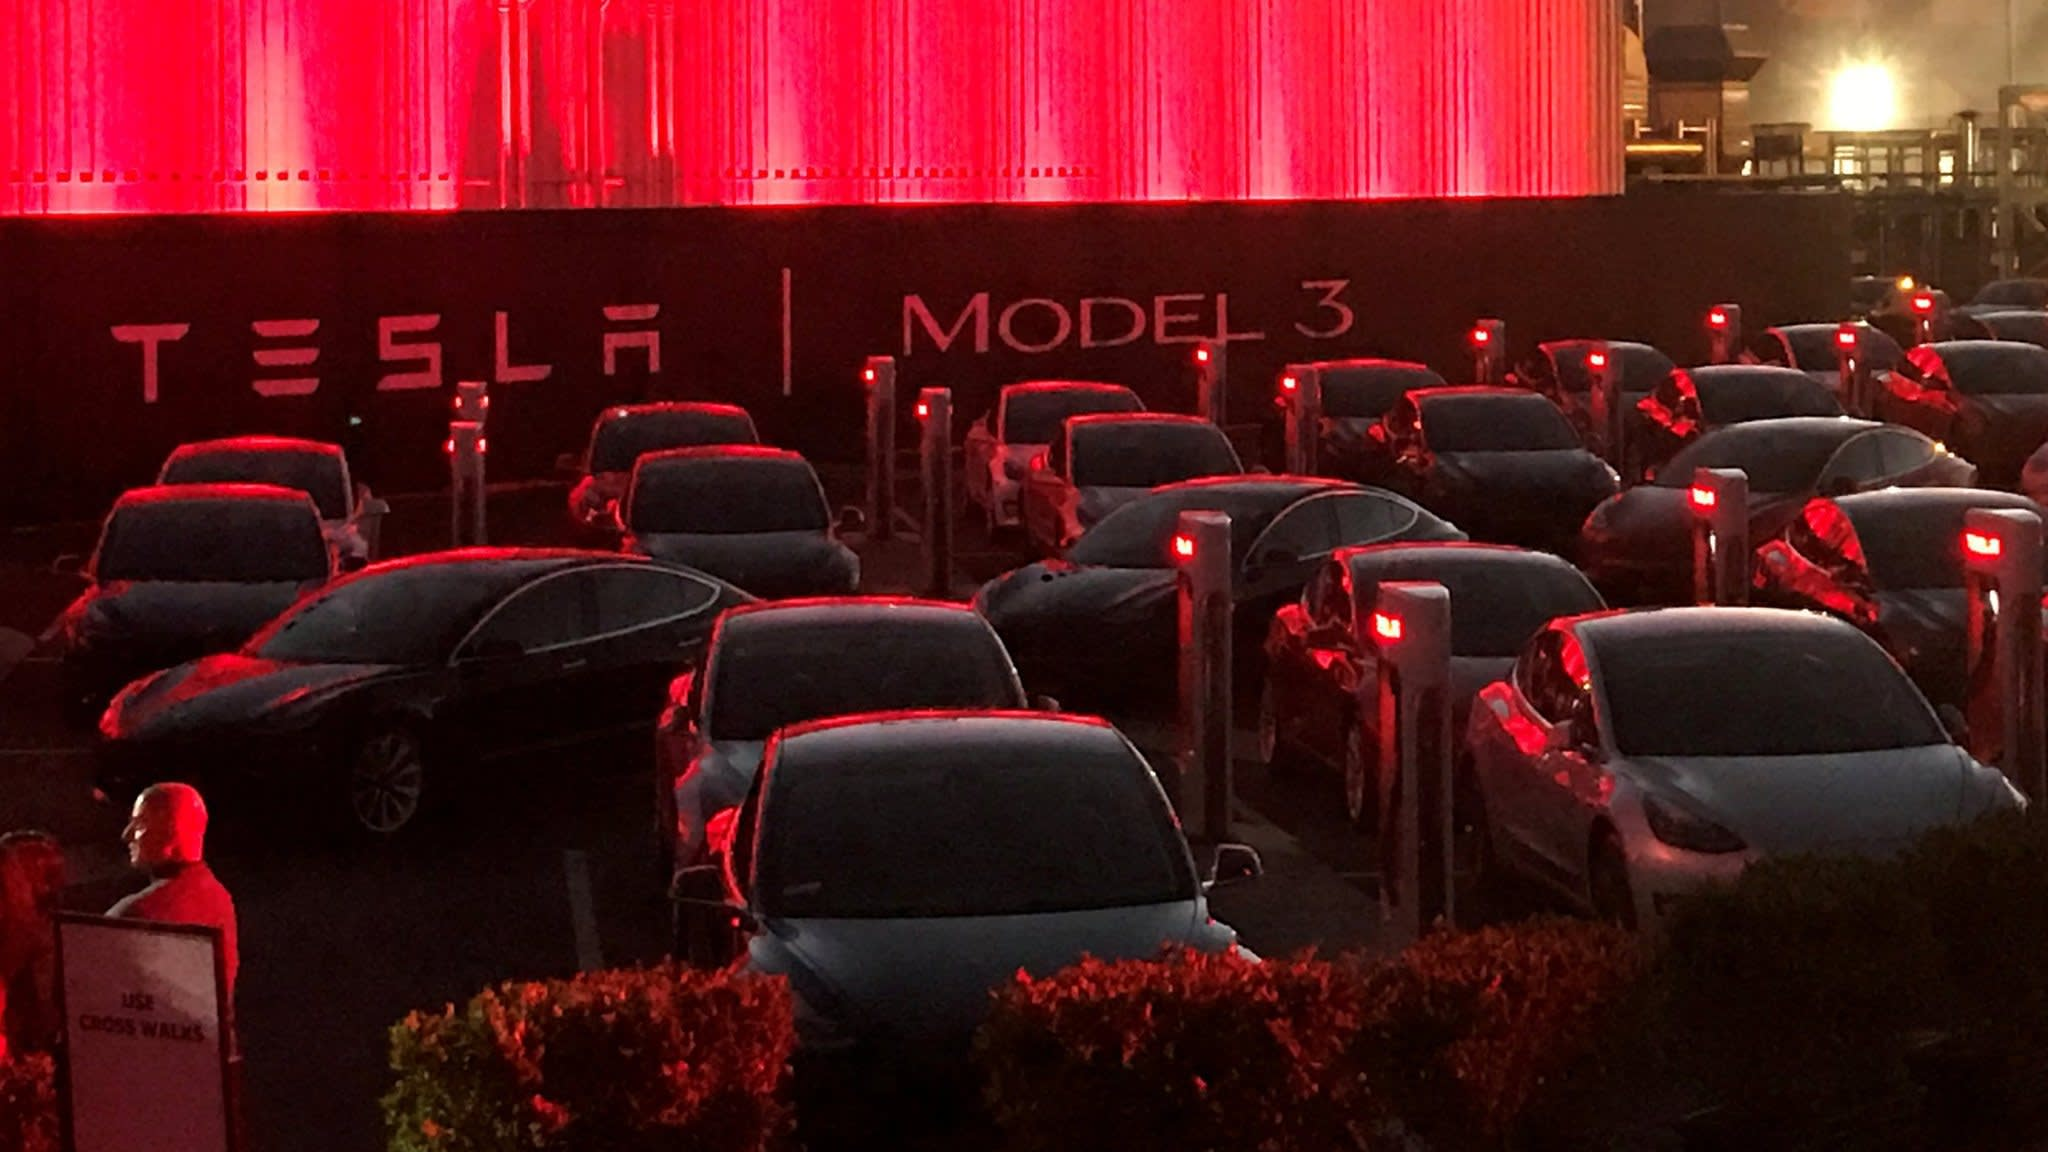 Tesla confident of overcoming Model 3 battery woes